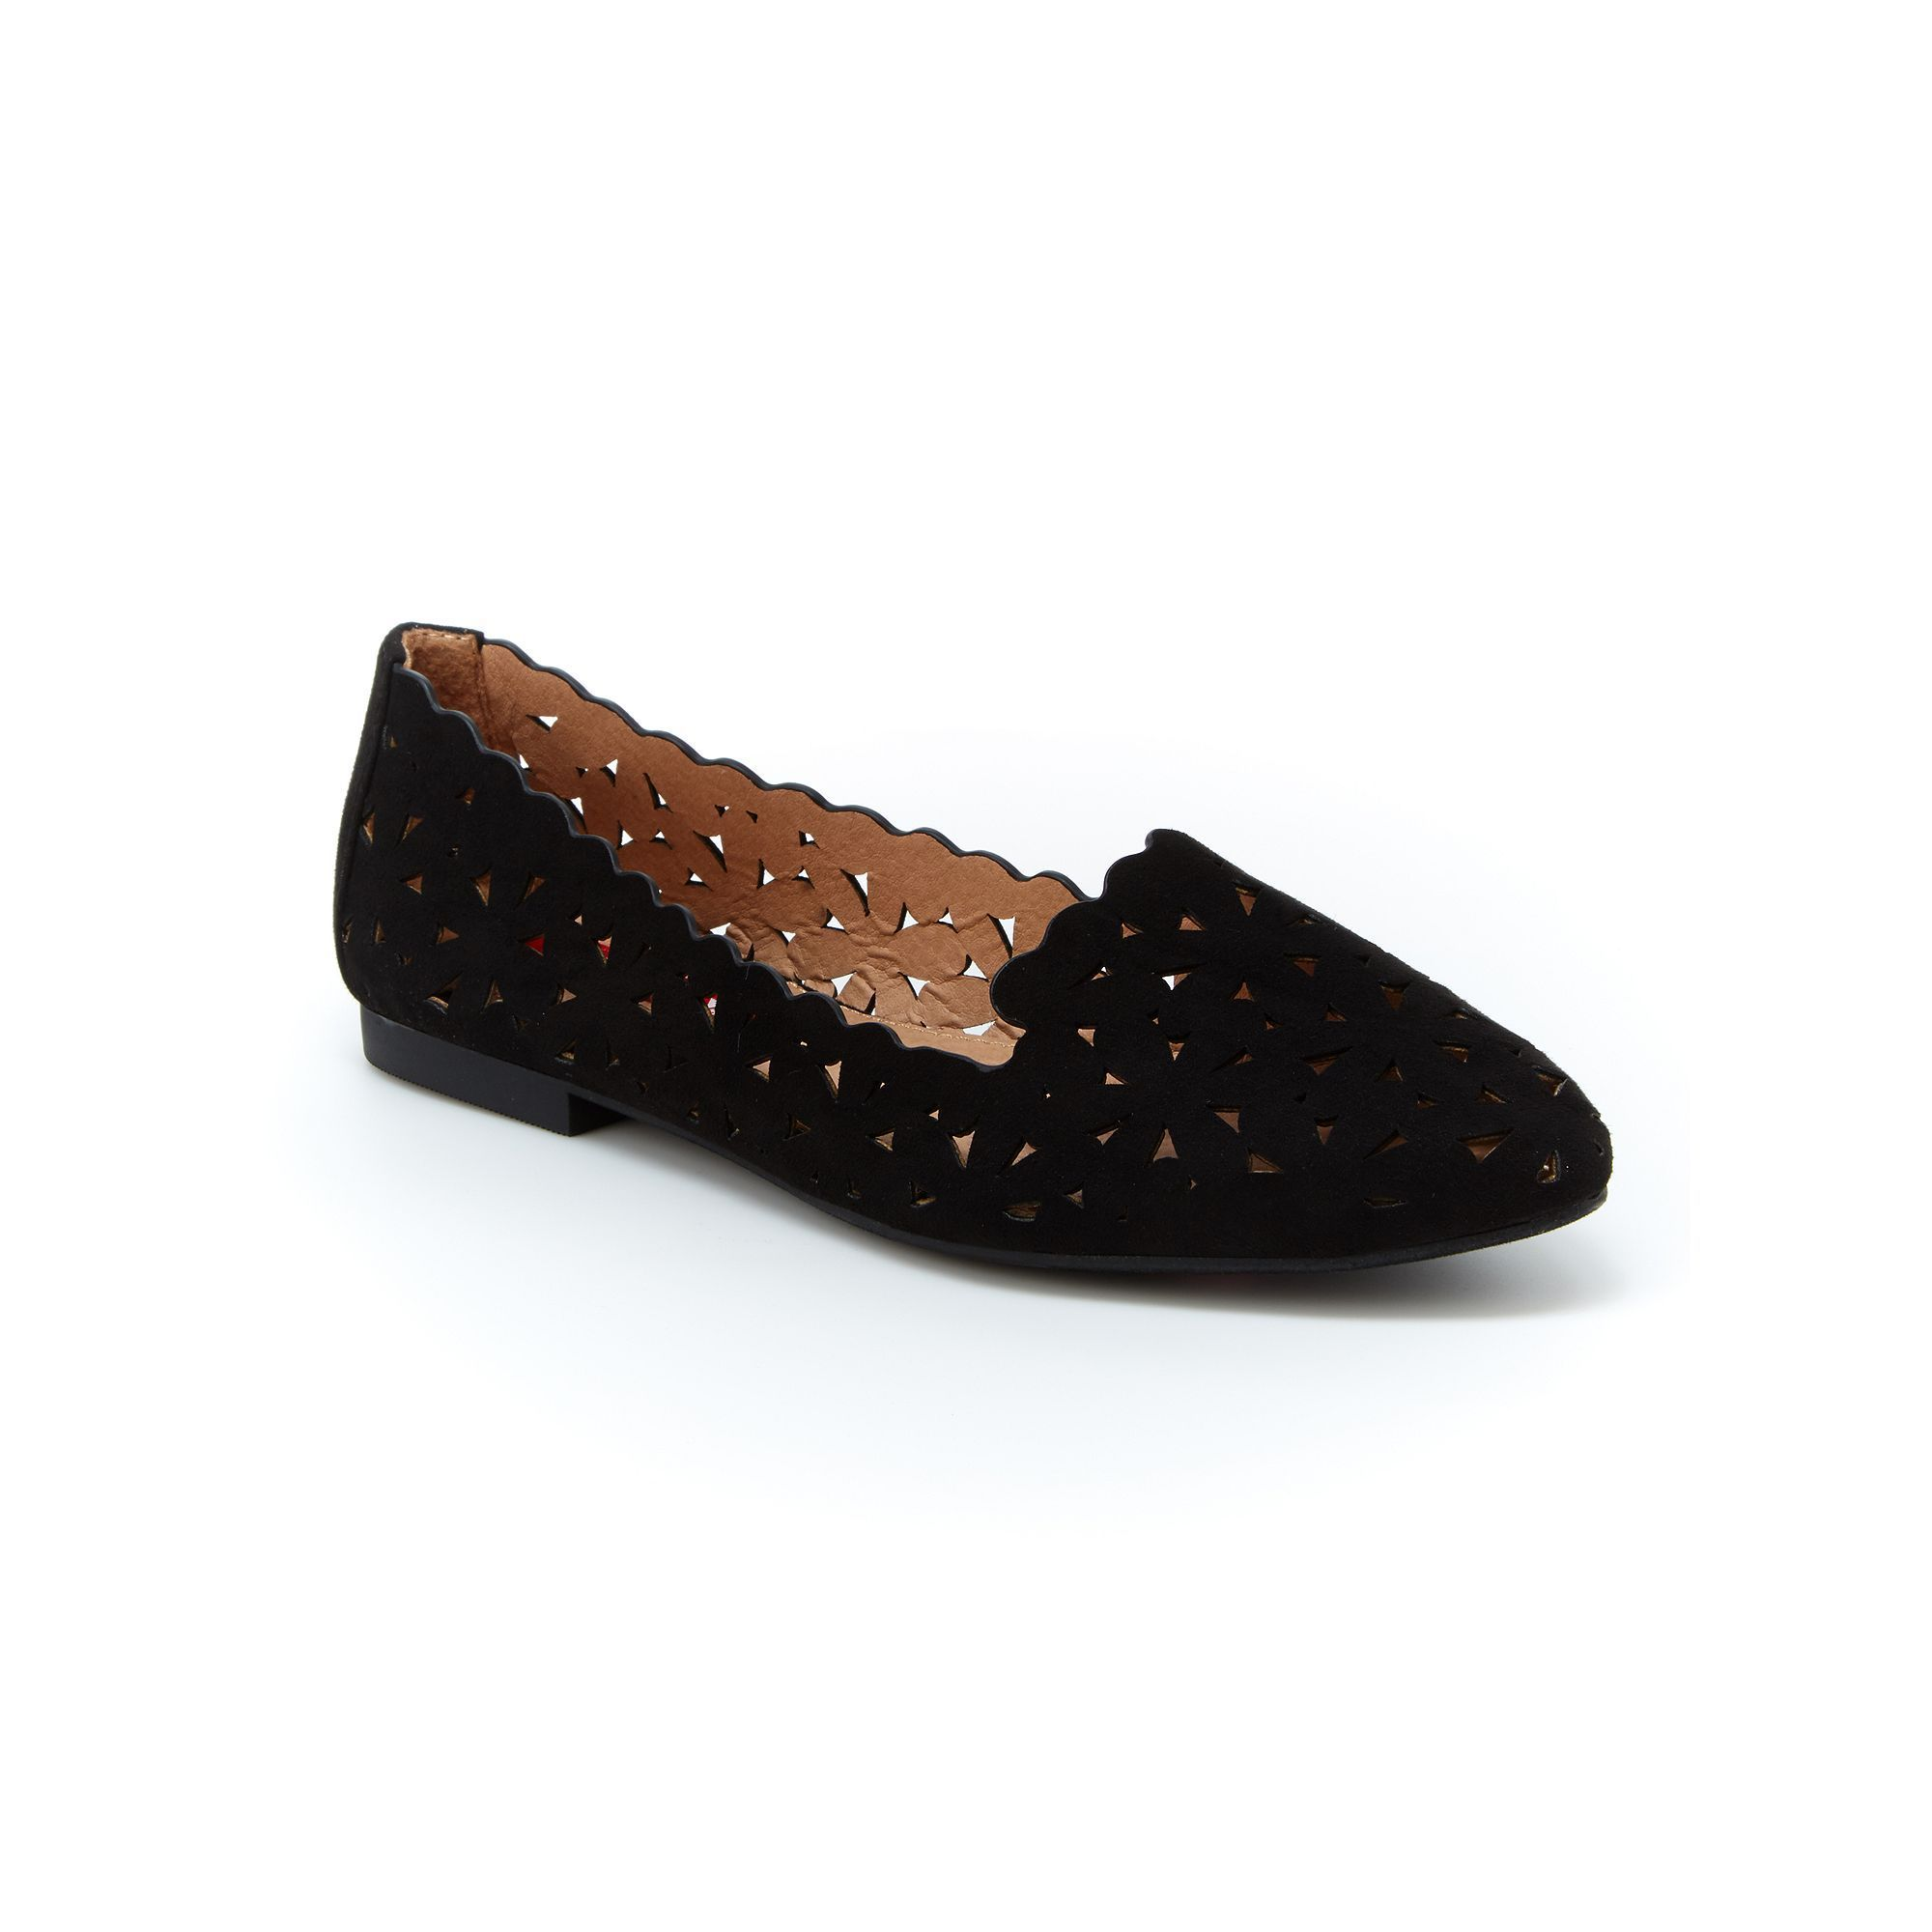 Unionbay Welcome Women's ... Loafer Flats zl8V7